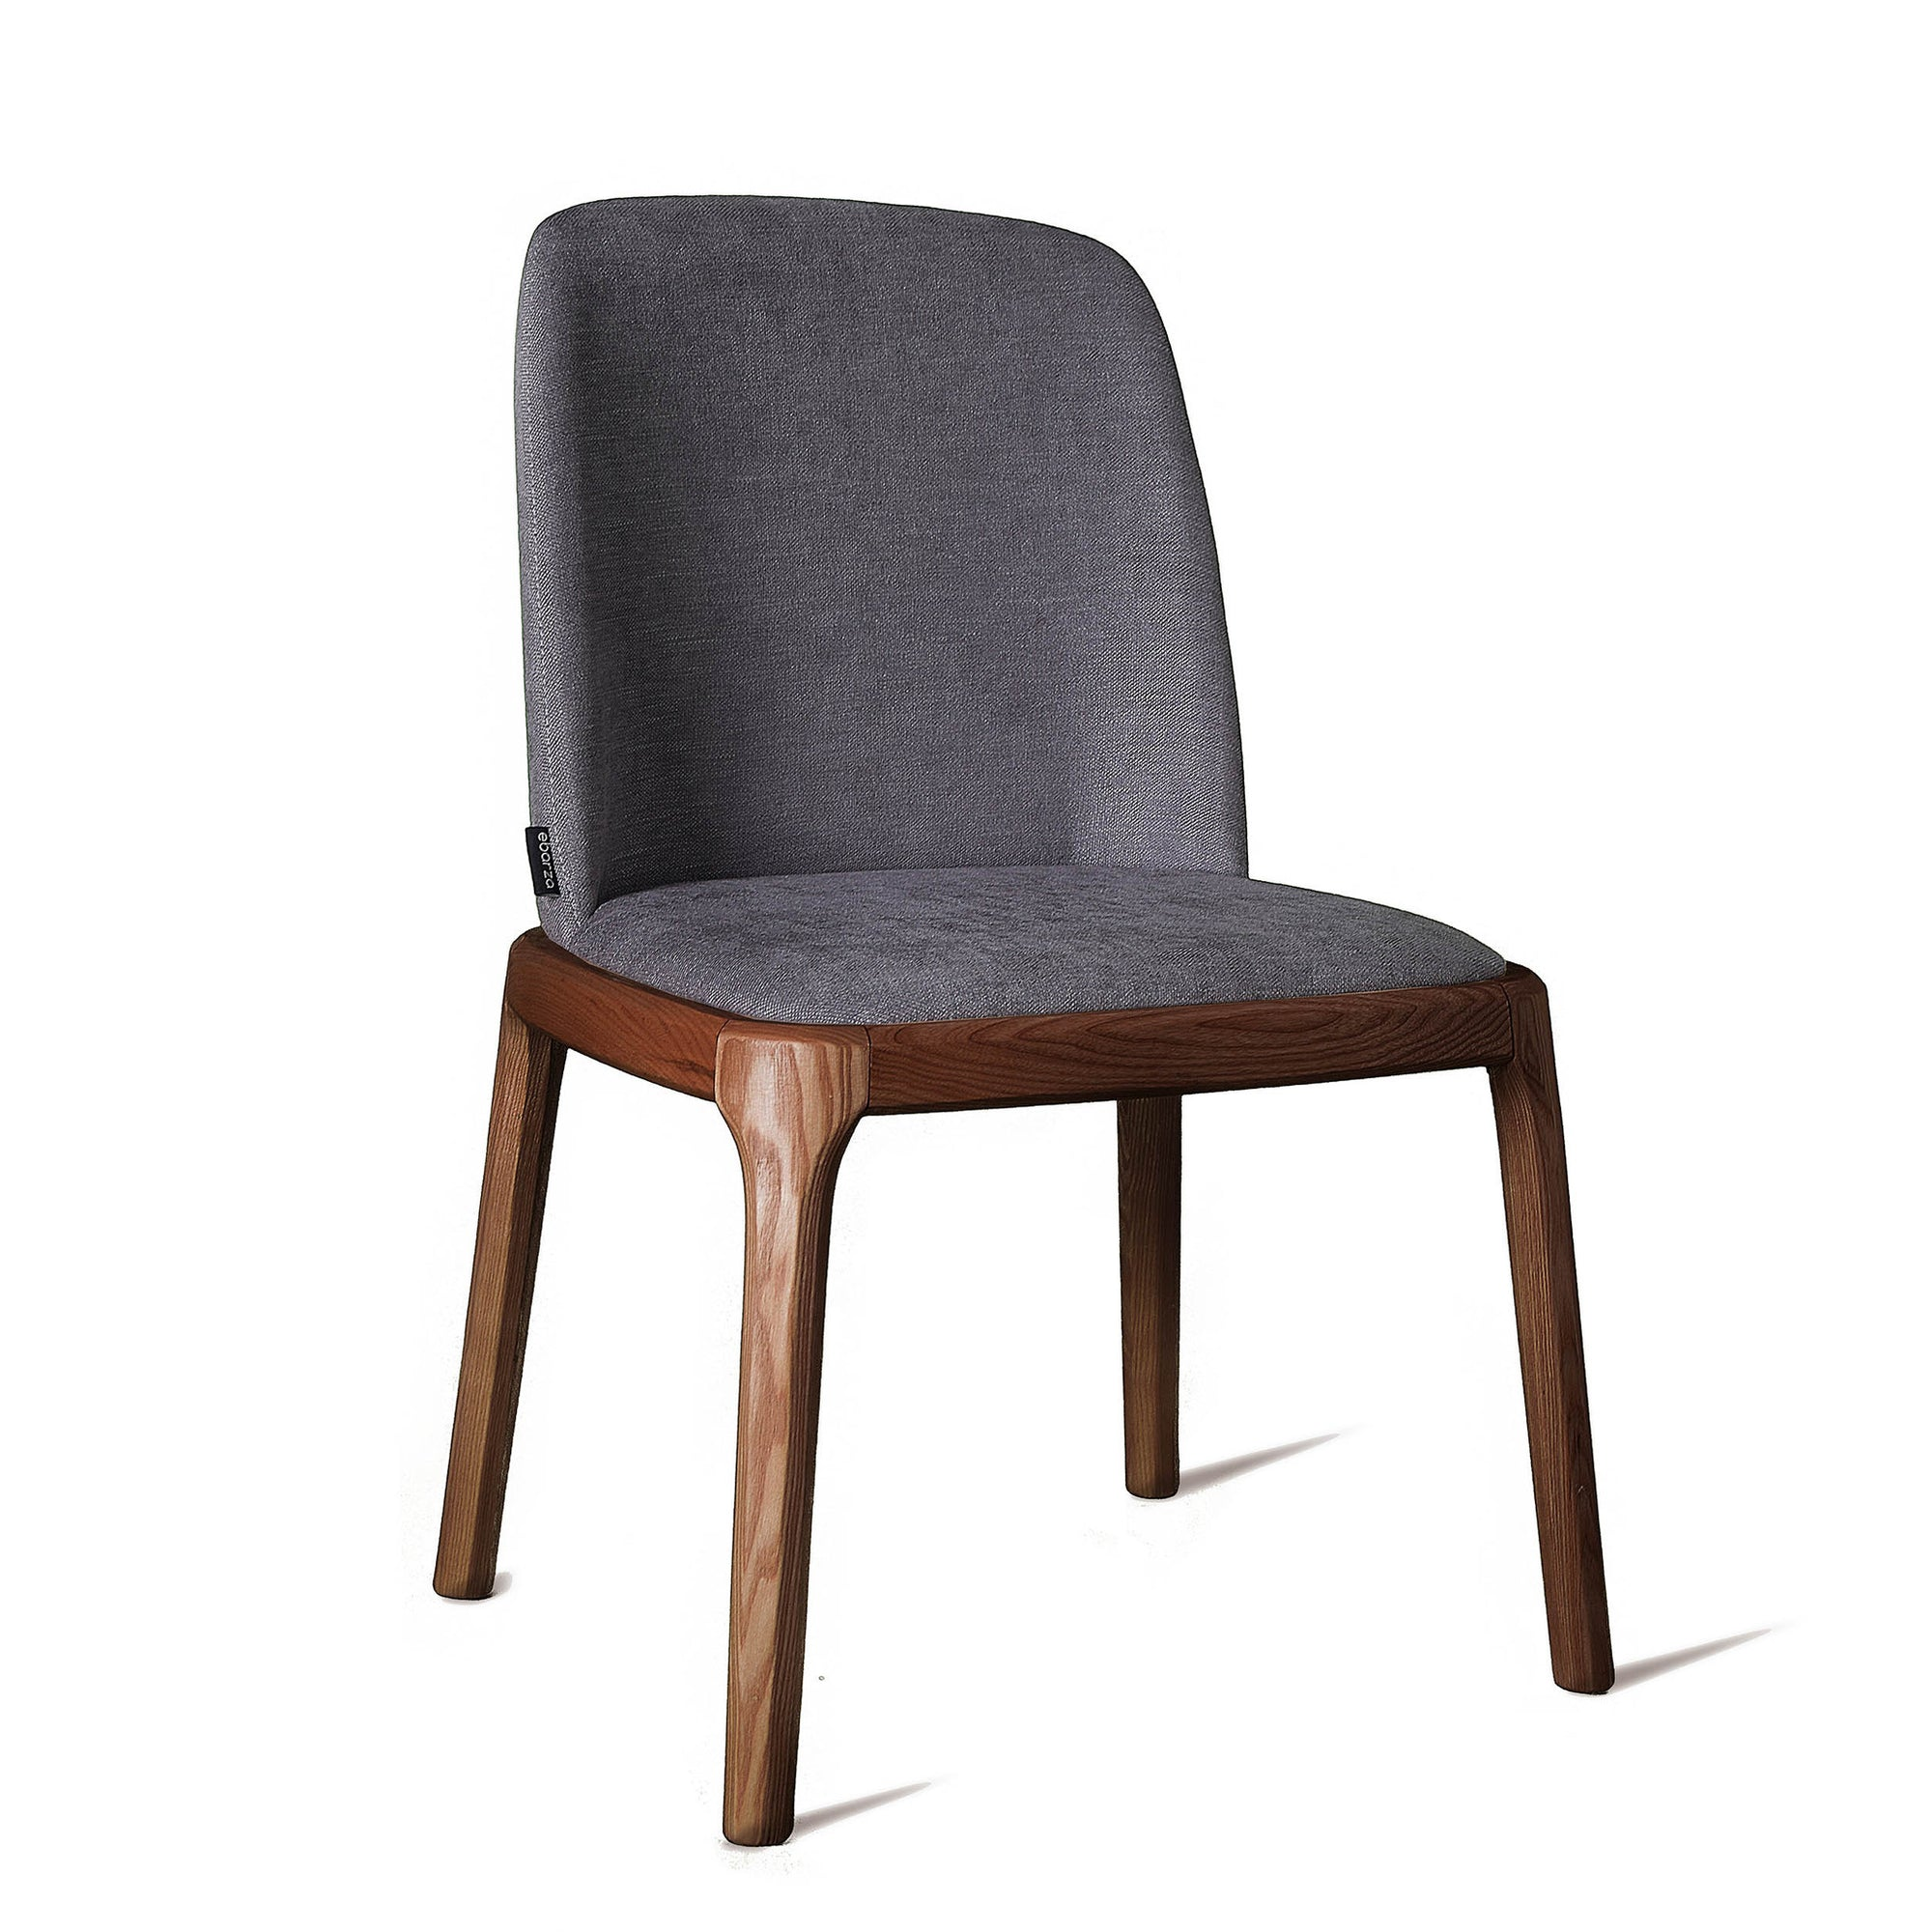 Dining Chair Solid Ash wood  GRA-NA-W -  كرسي طعام خشب رمادي صلب - Shop Online Furniture and Home Decor Store in Dubai, UAE at ebarza